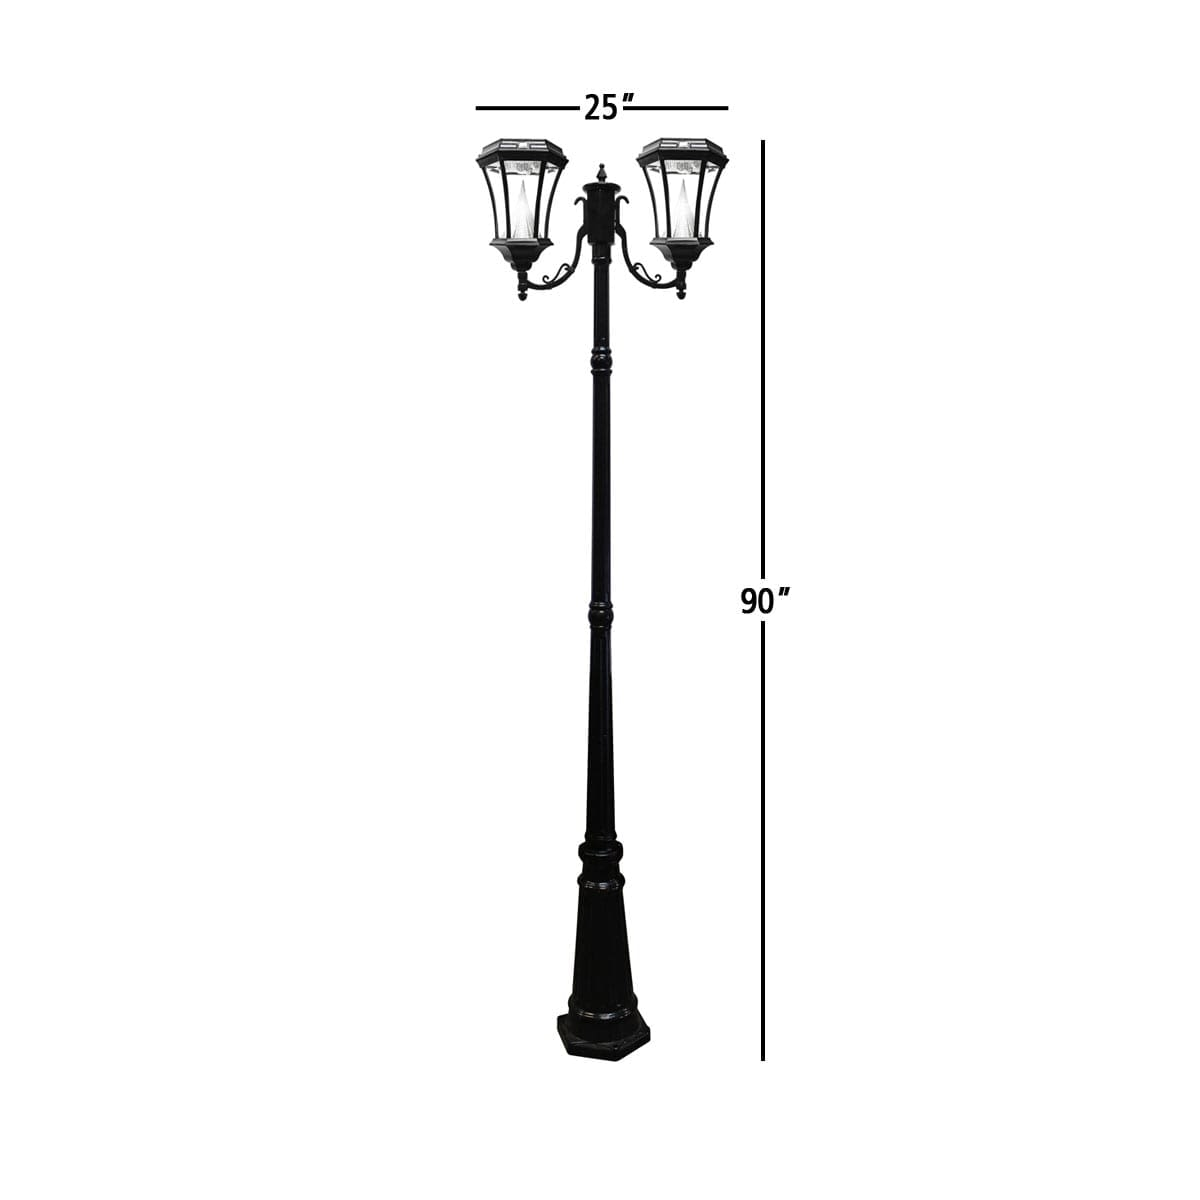 Victorian-Solar-Lamp-Post-by-Gama-Sonic-GS-94D-Double-Lamp-Post-Measurements